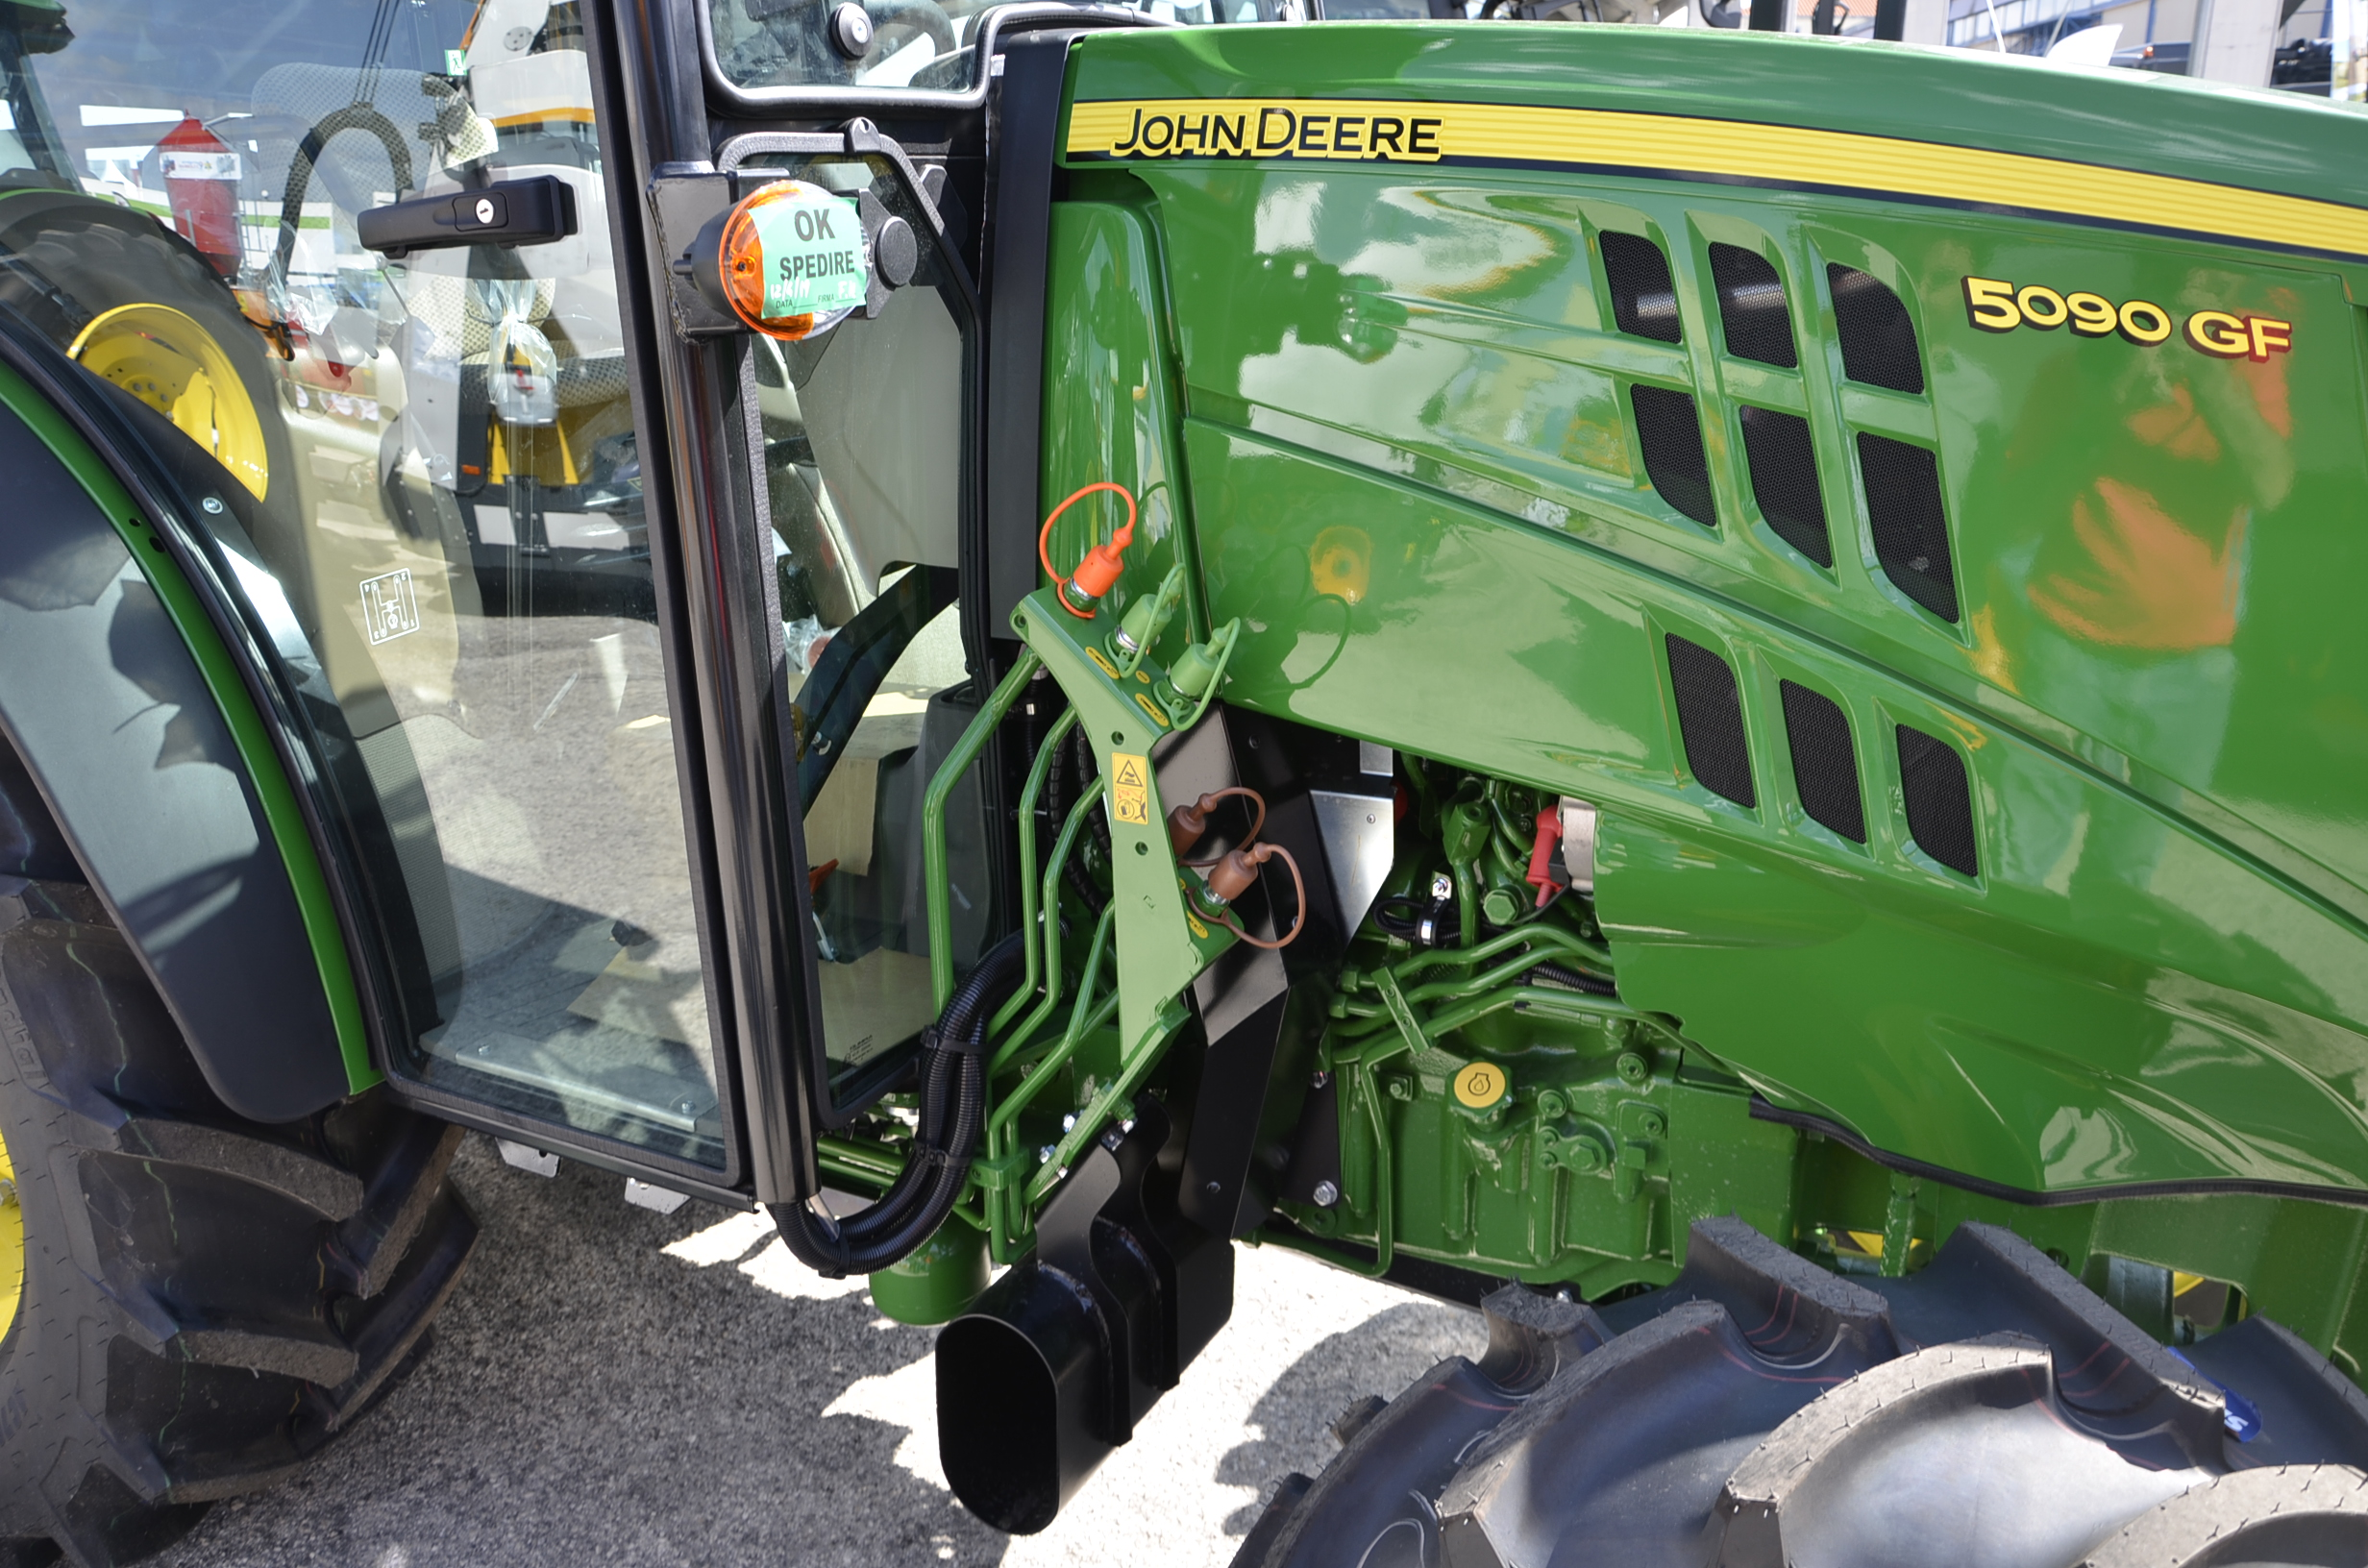 JohnDeere5090GF-54